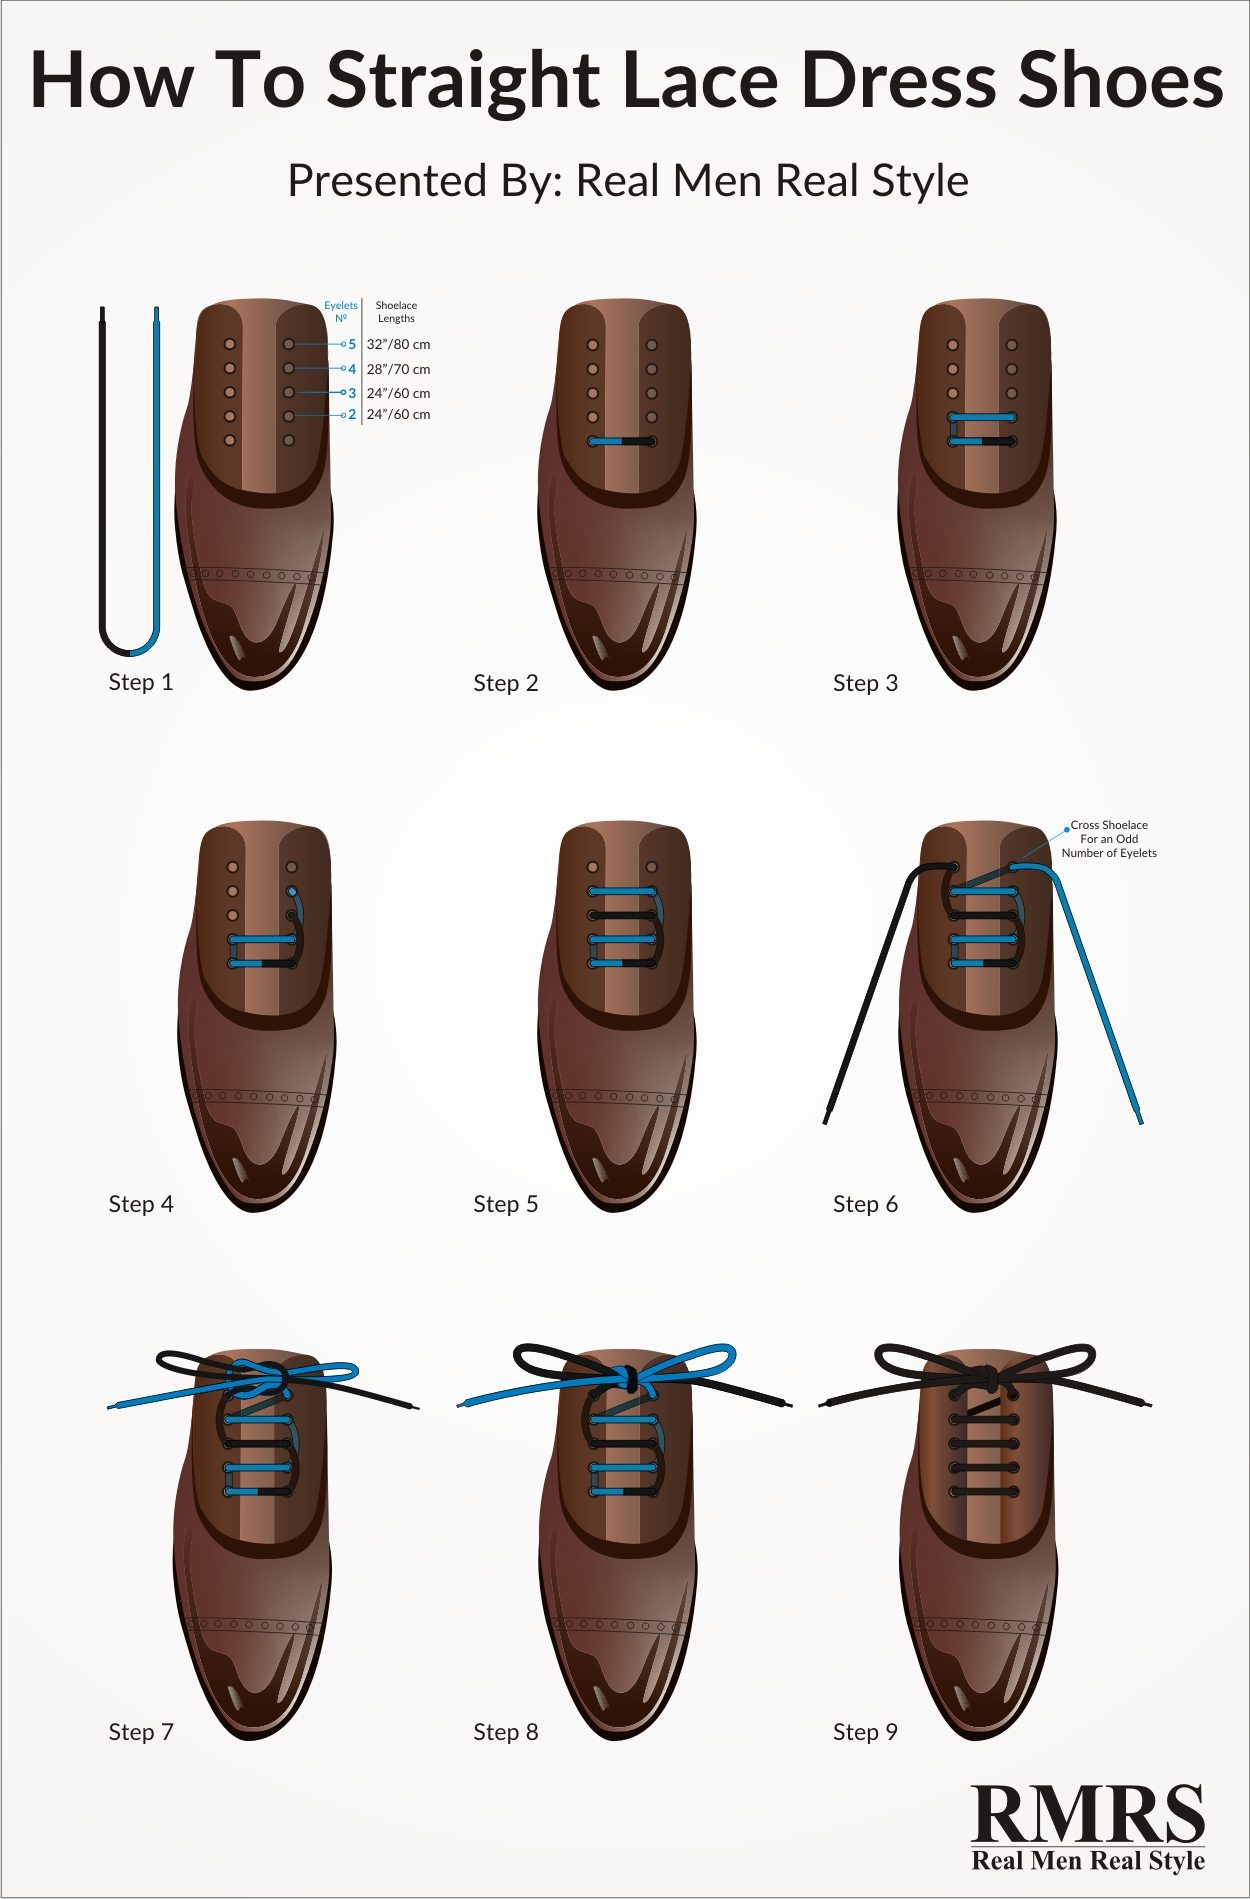 How To Put Shoelaces In Dress Shoes